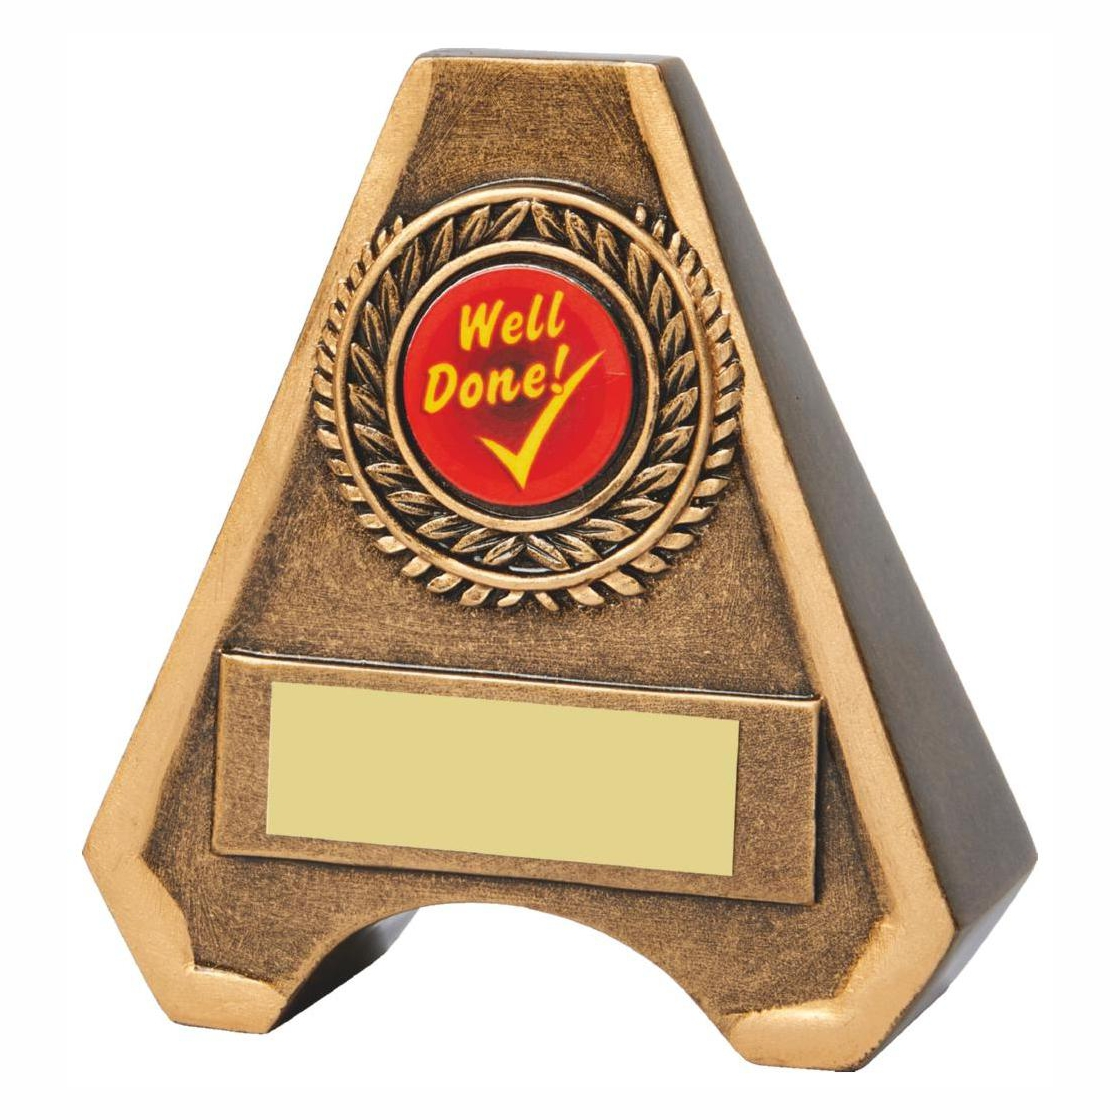 Ideal for school. A triangular style two tone antique gold coloured resin trophy with engraving plate